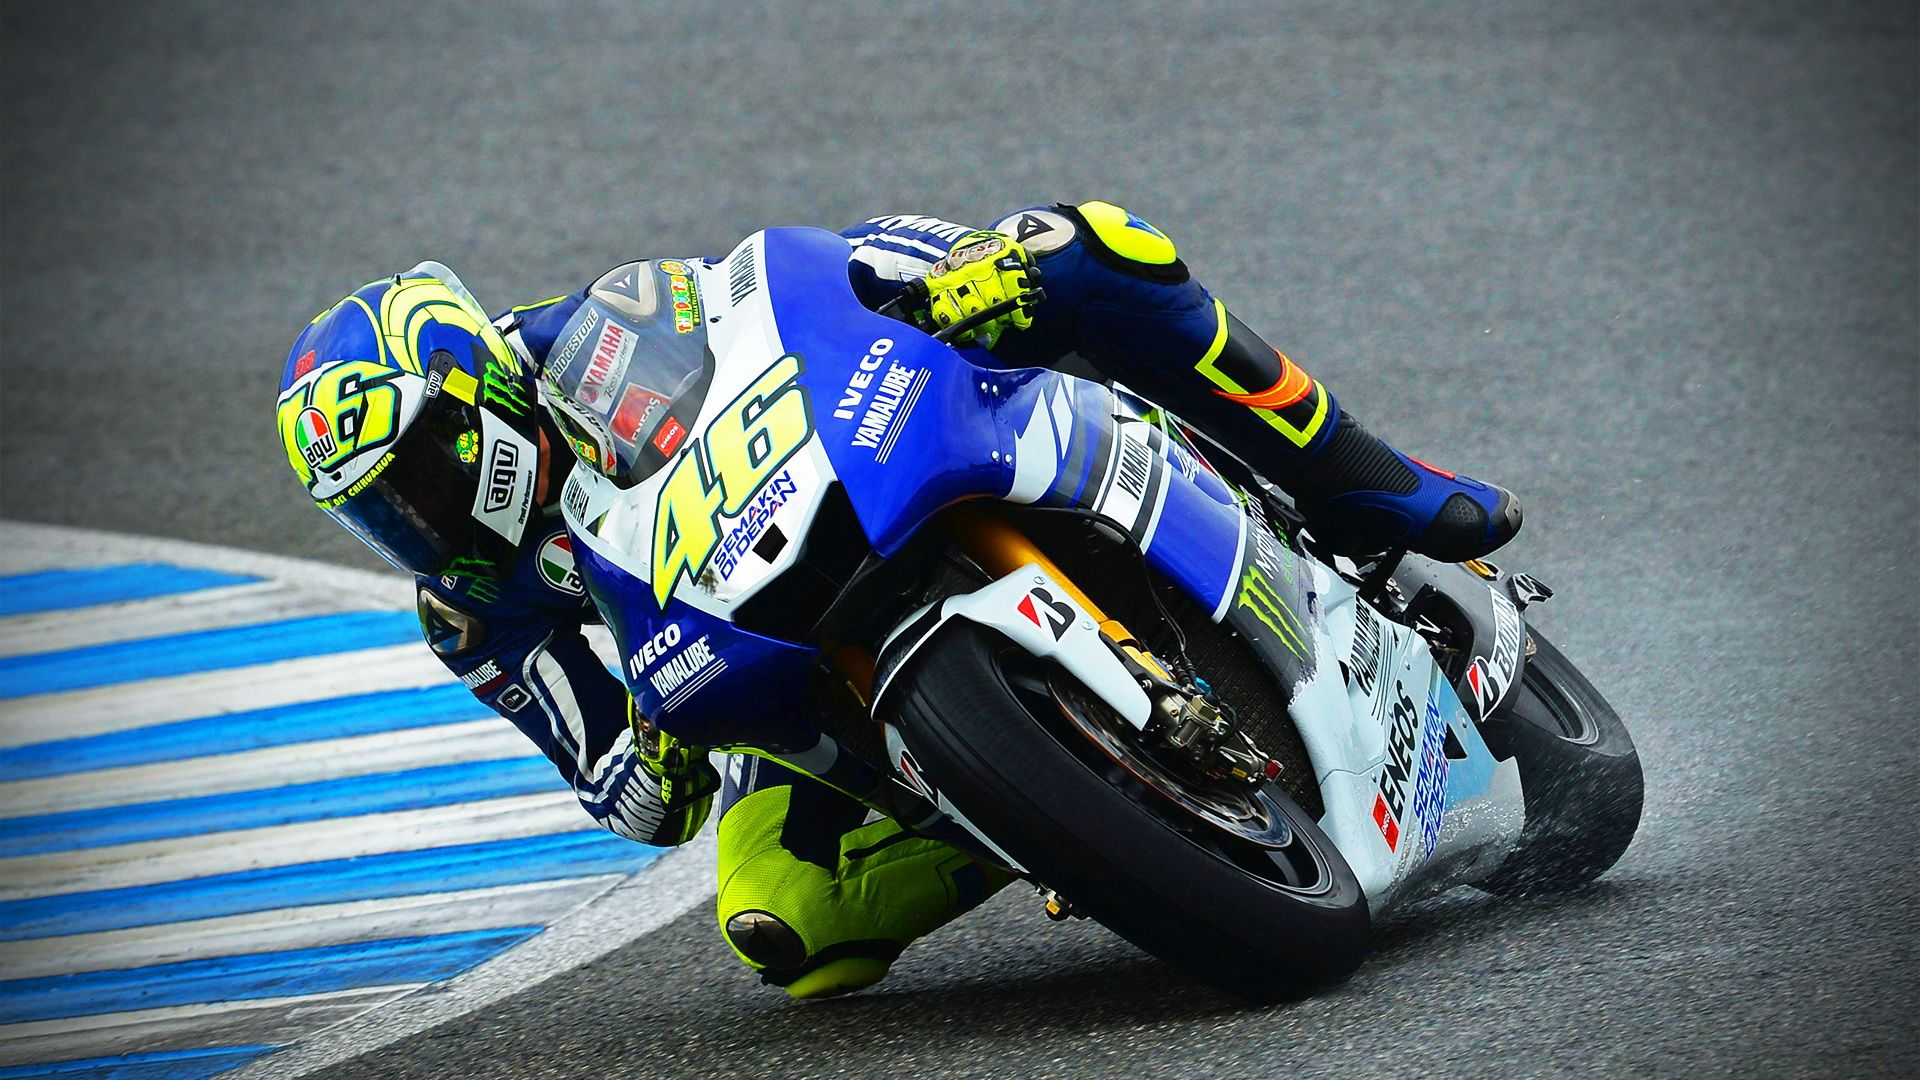 Lorenzo and valentino rossi wallpapers 7037856 download wallpaper lorenzo and valentino rossi wallpapers 7037856 download wallpaper pinterest valentino rossi and wallpaper voltagebd Images